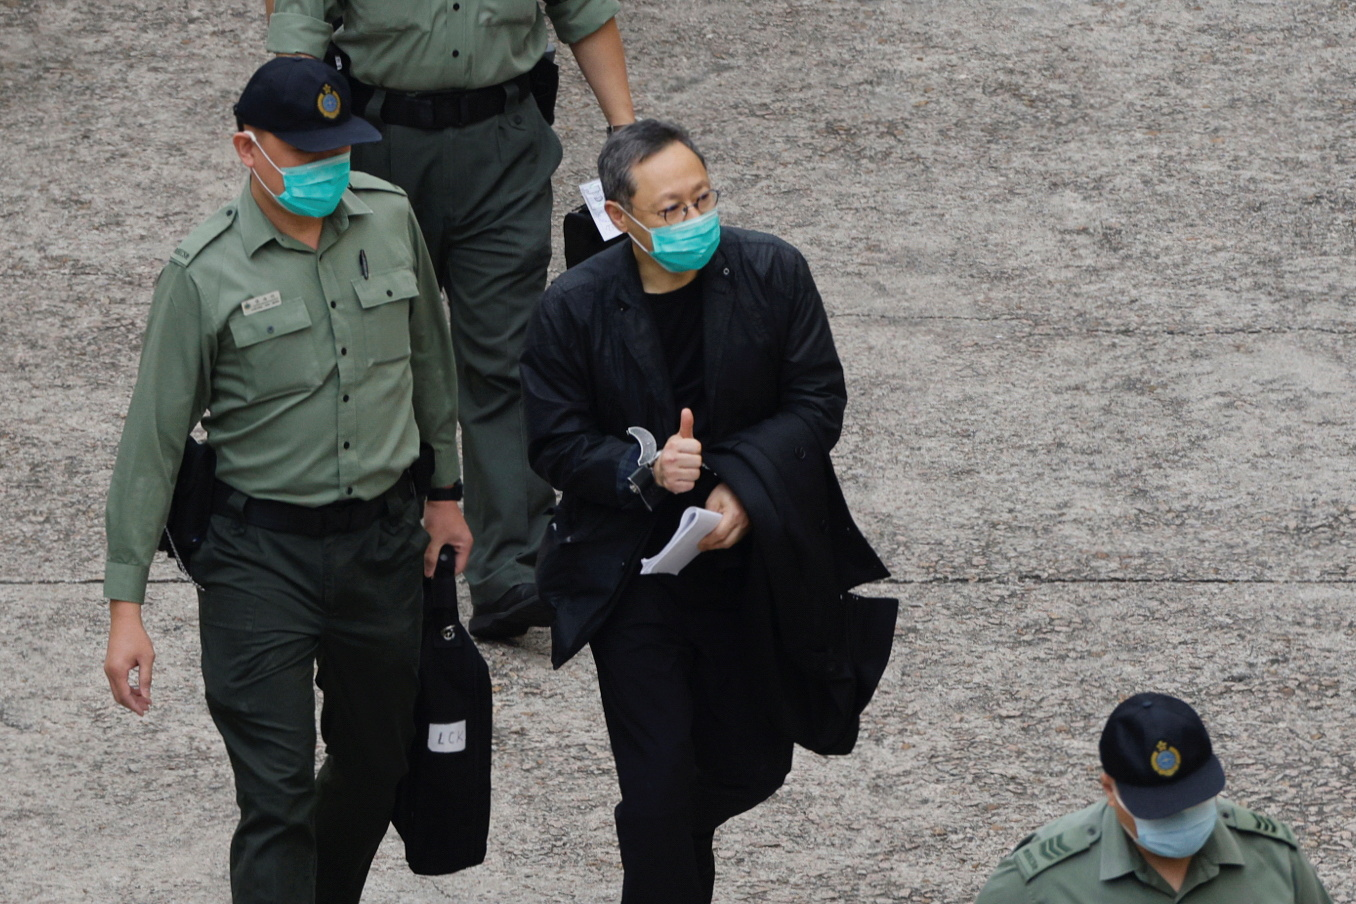 Pro-democracy activist Benny Tai flashes thumbs up as he walks to a prison van to head to court, over the national security law charge, in the early morning, in Hong Kong, China March 2, 2021. REUTERS/Tyrone Siu